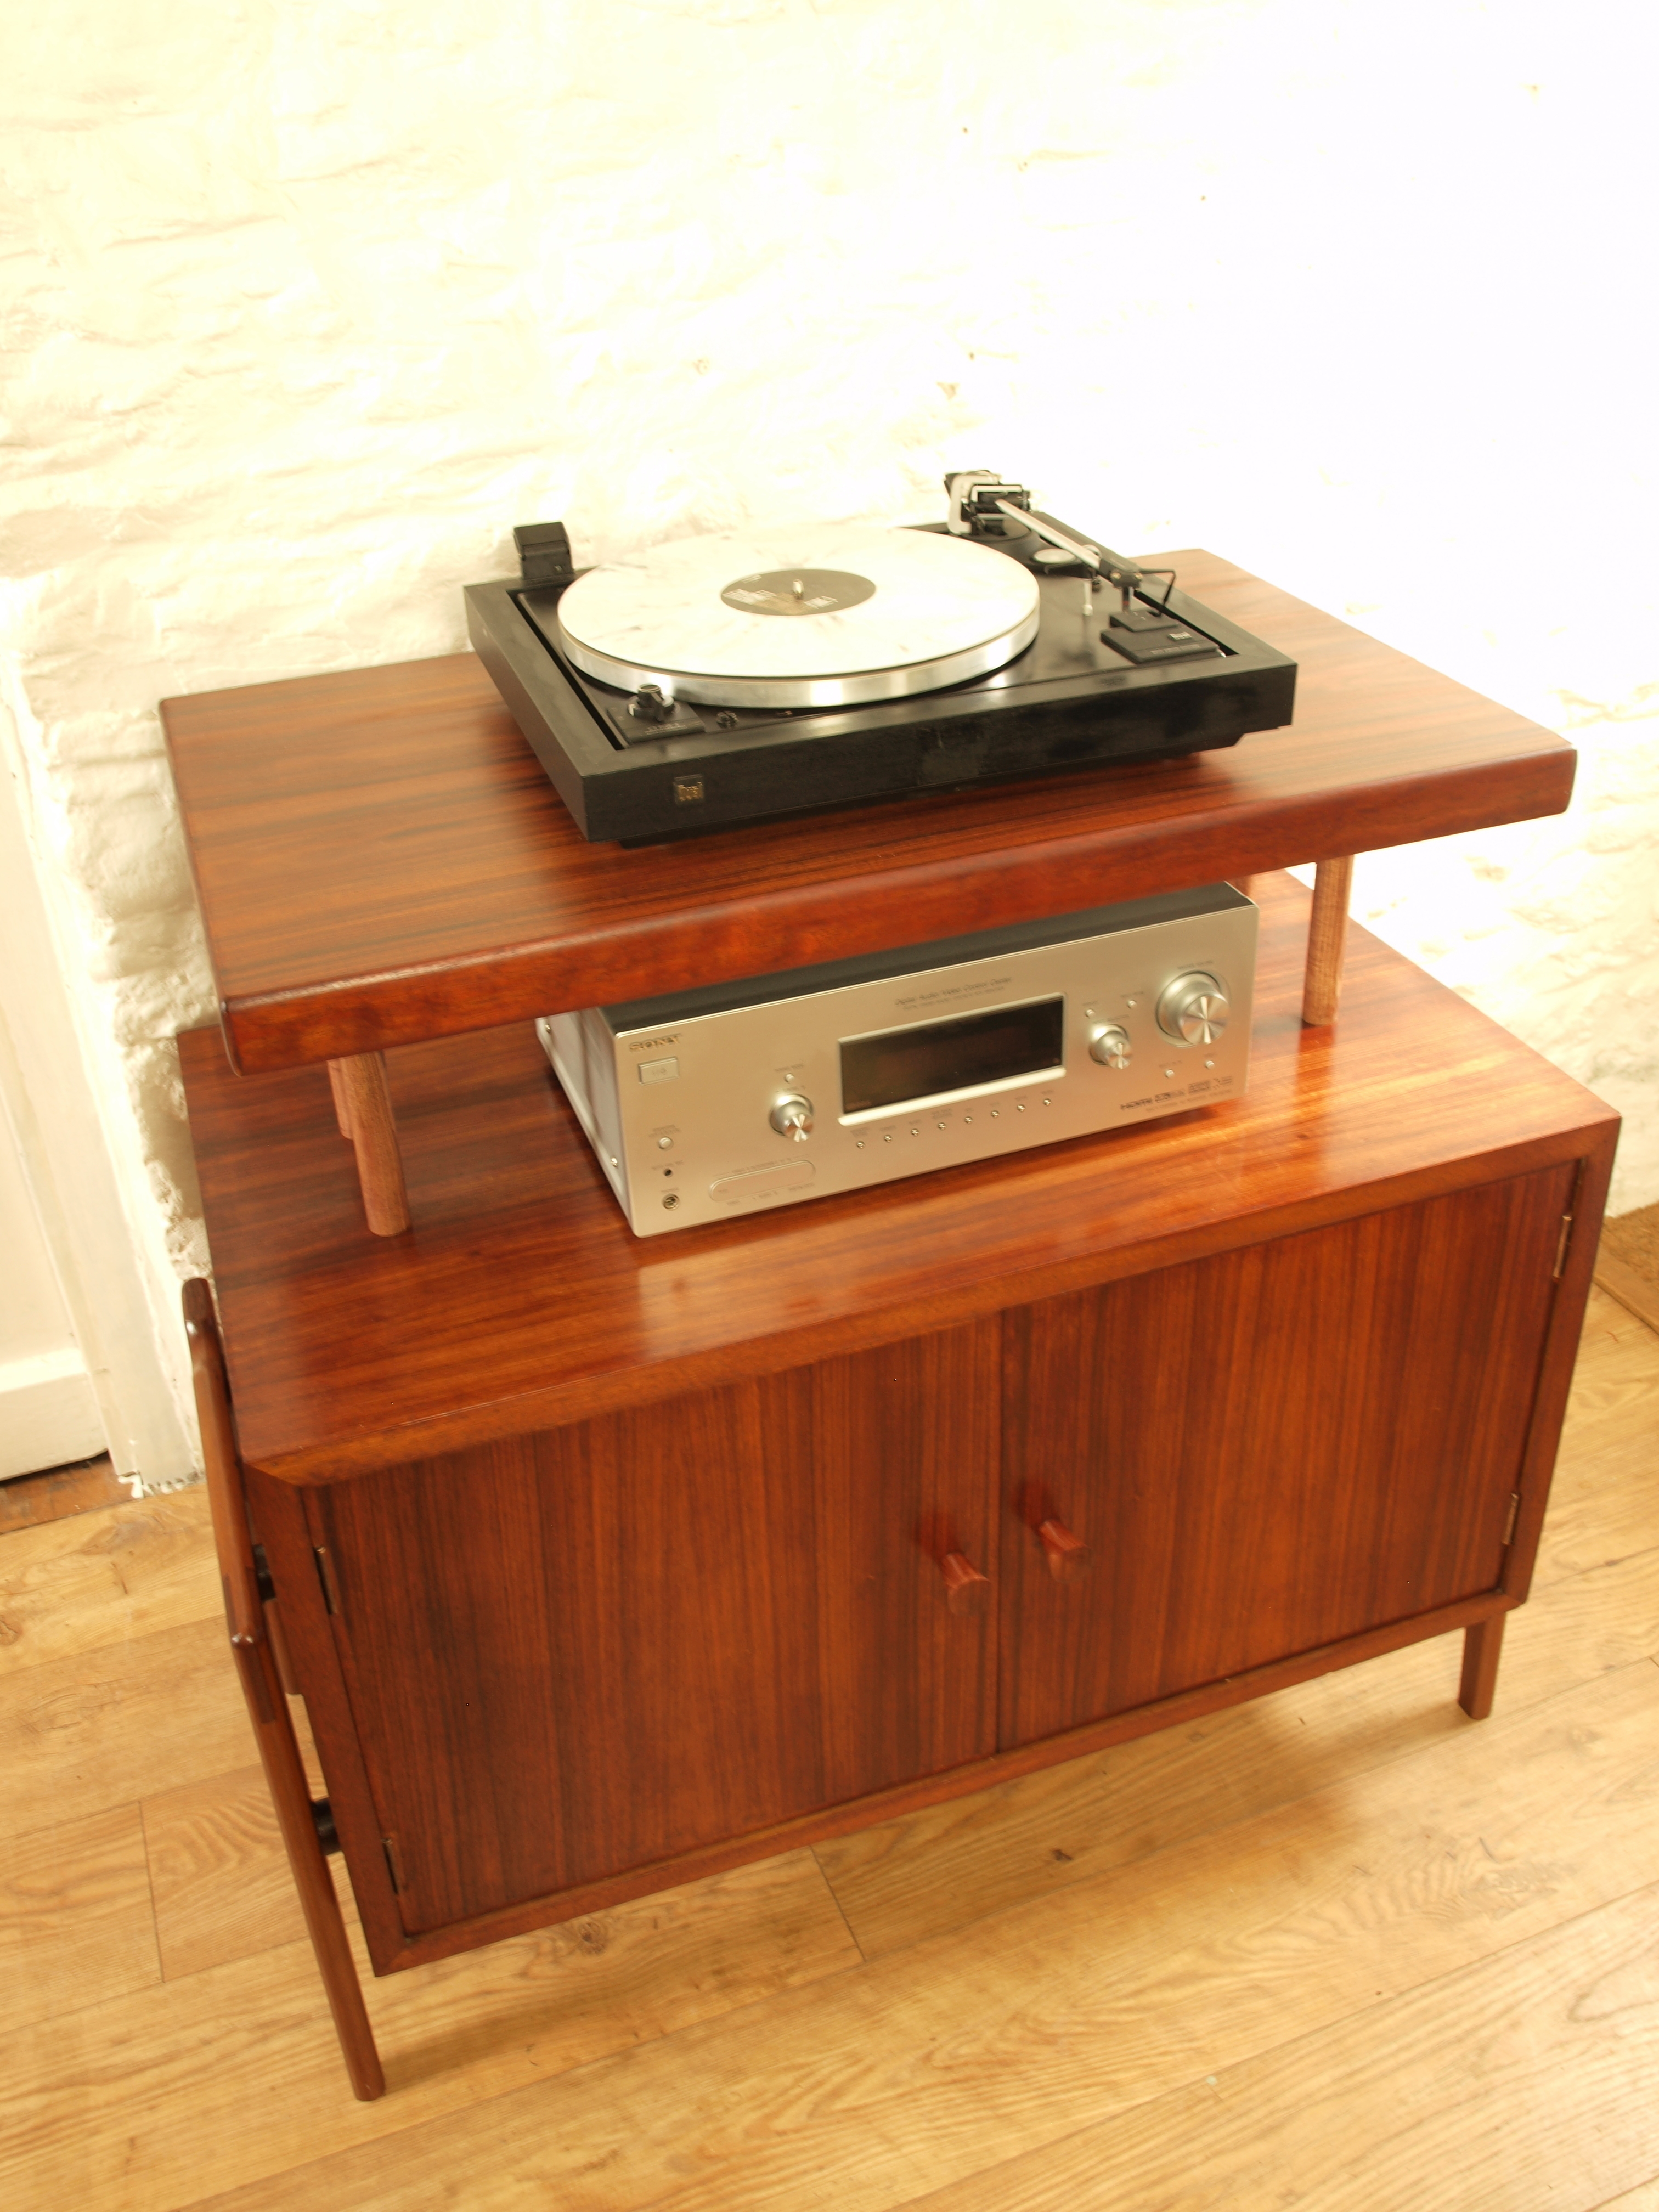 Danish Mid Century Recordvinyl Lp Storage Cabinet Hifi Turntable